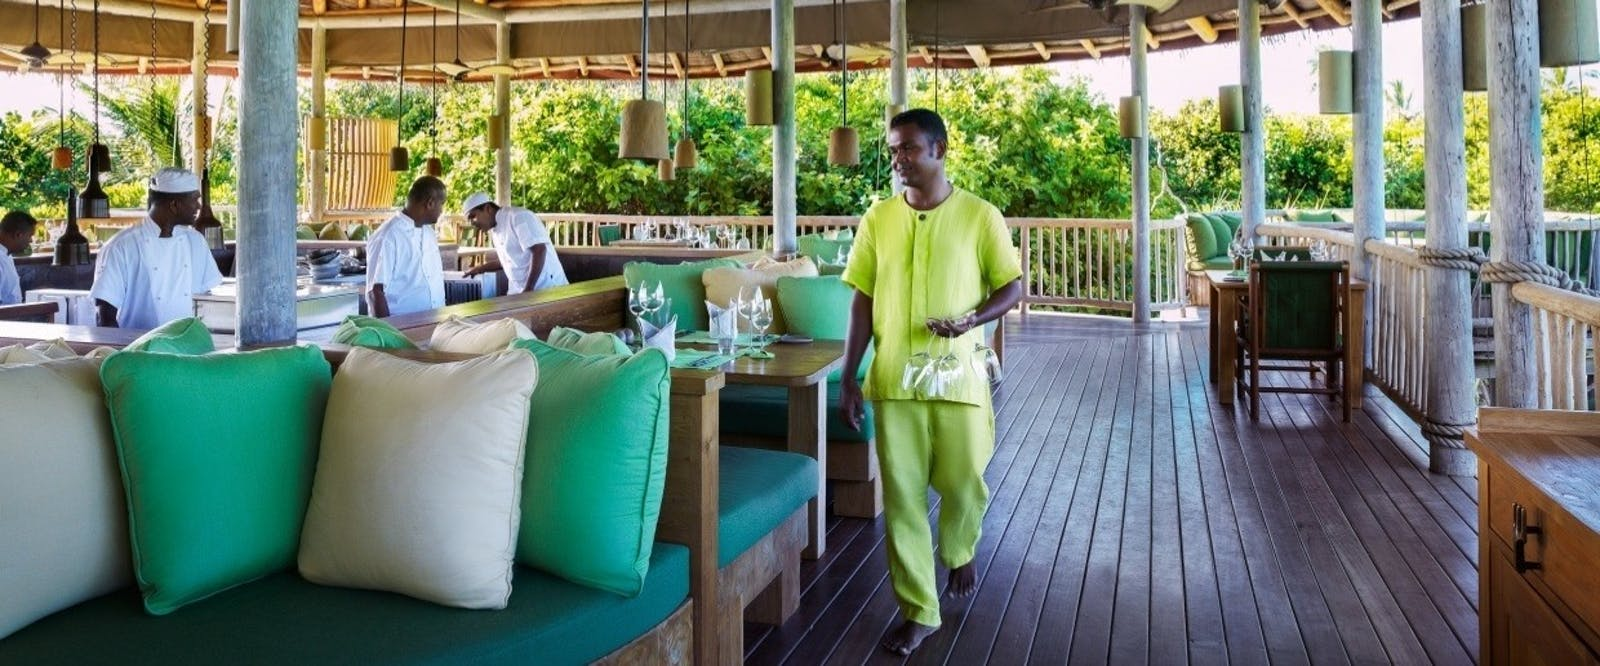 Leaf Restaurant at Six Senses Laamu, Maldives,  Indian Ocean